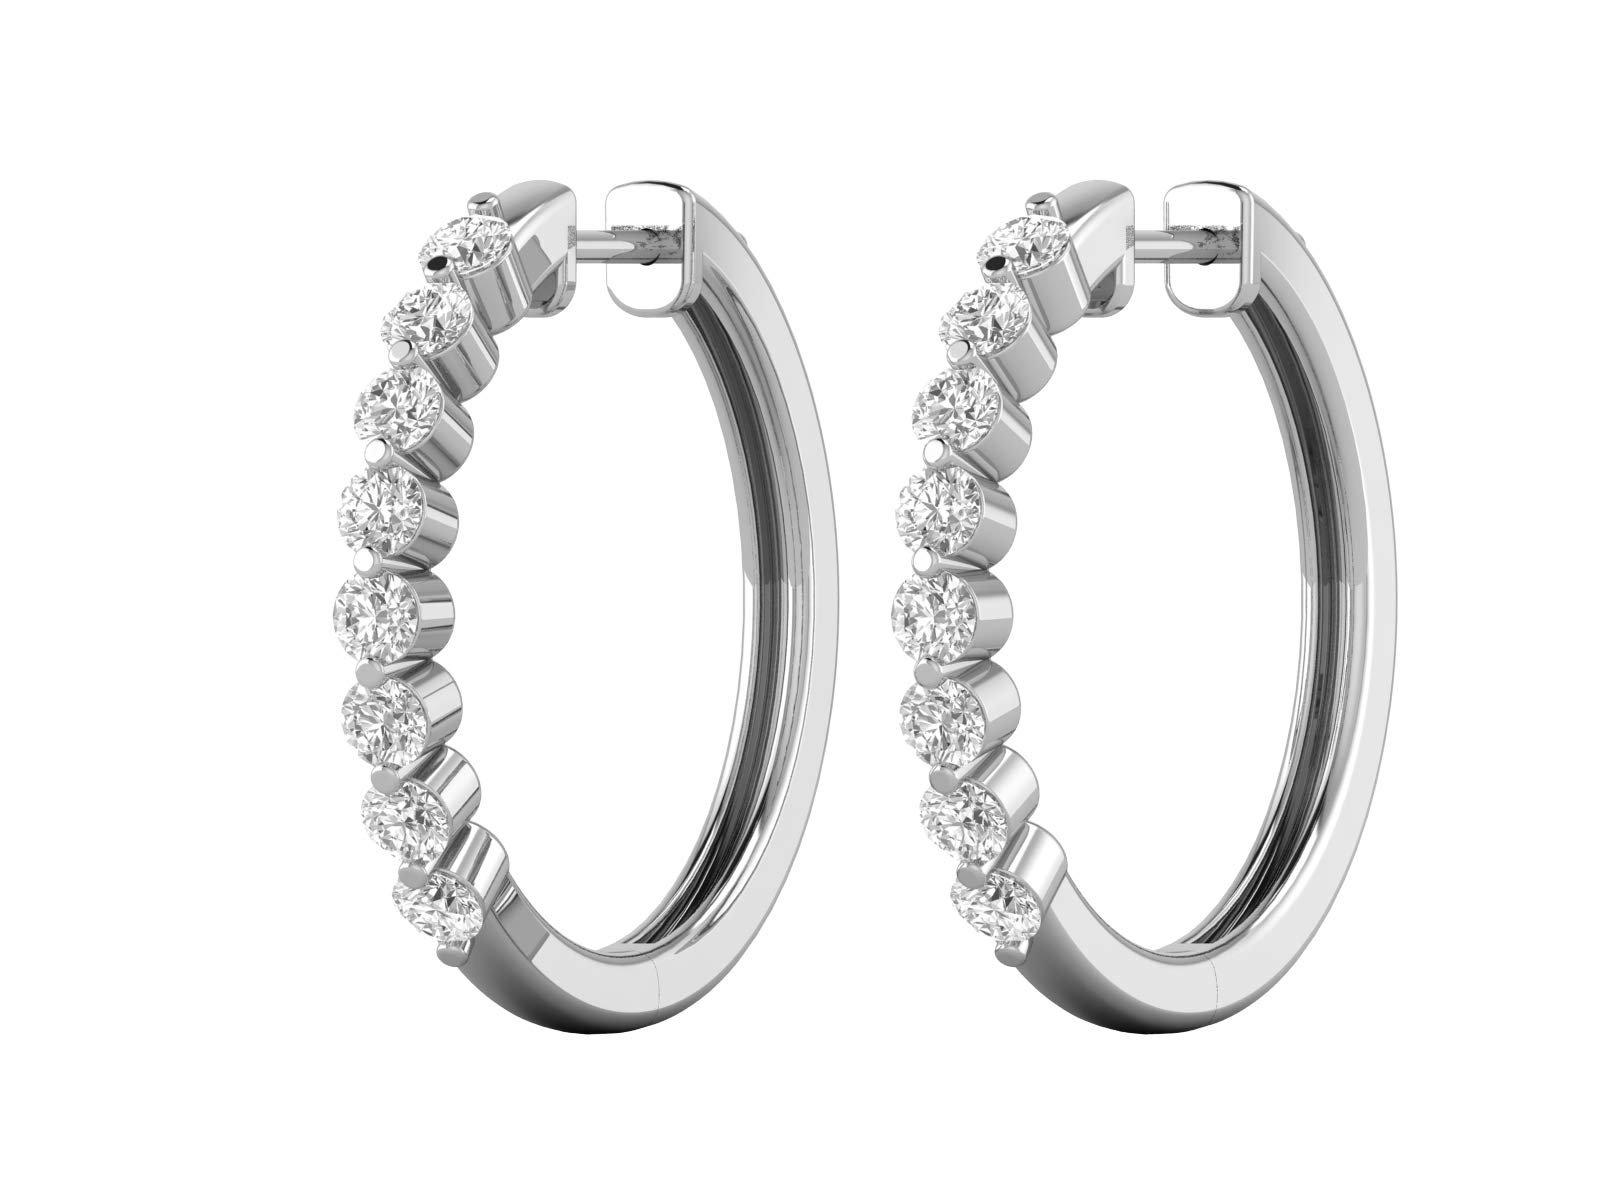 14K White Gold 1/2 Carat (H-I Color, SI2-I1 Clarity) Natural Diamond Essential Hoop Earrings for Women